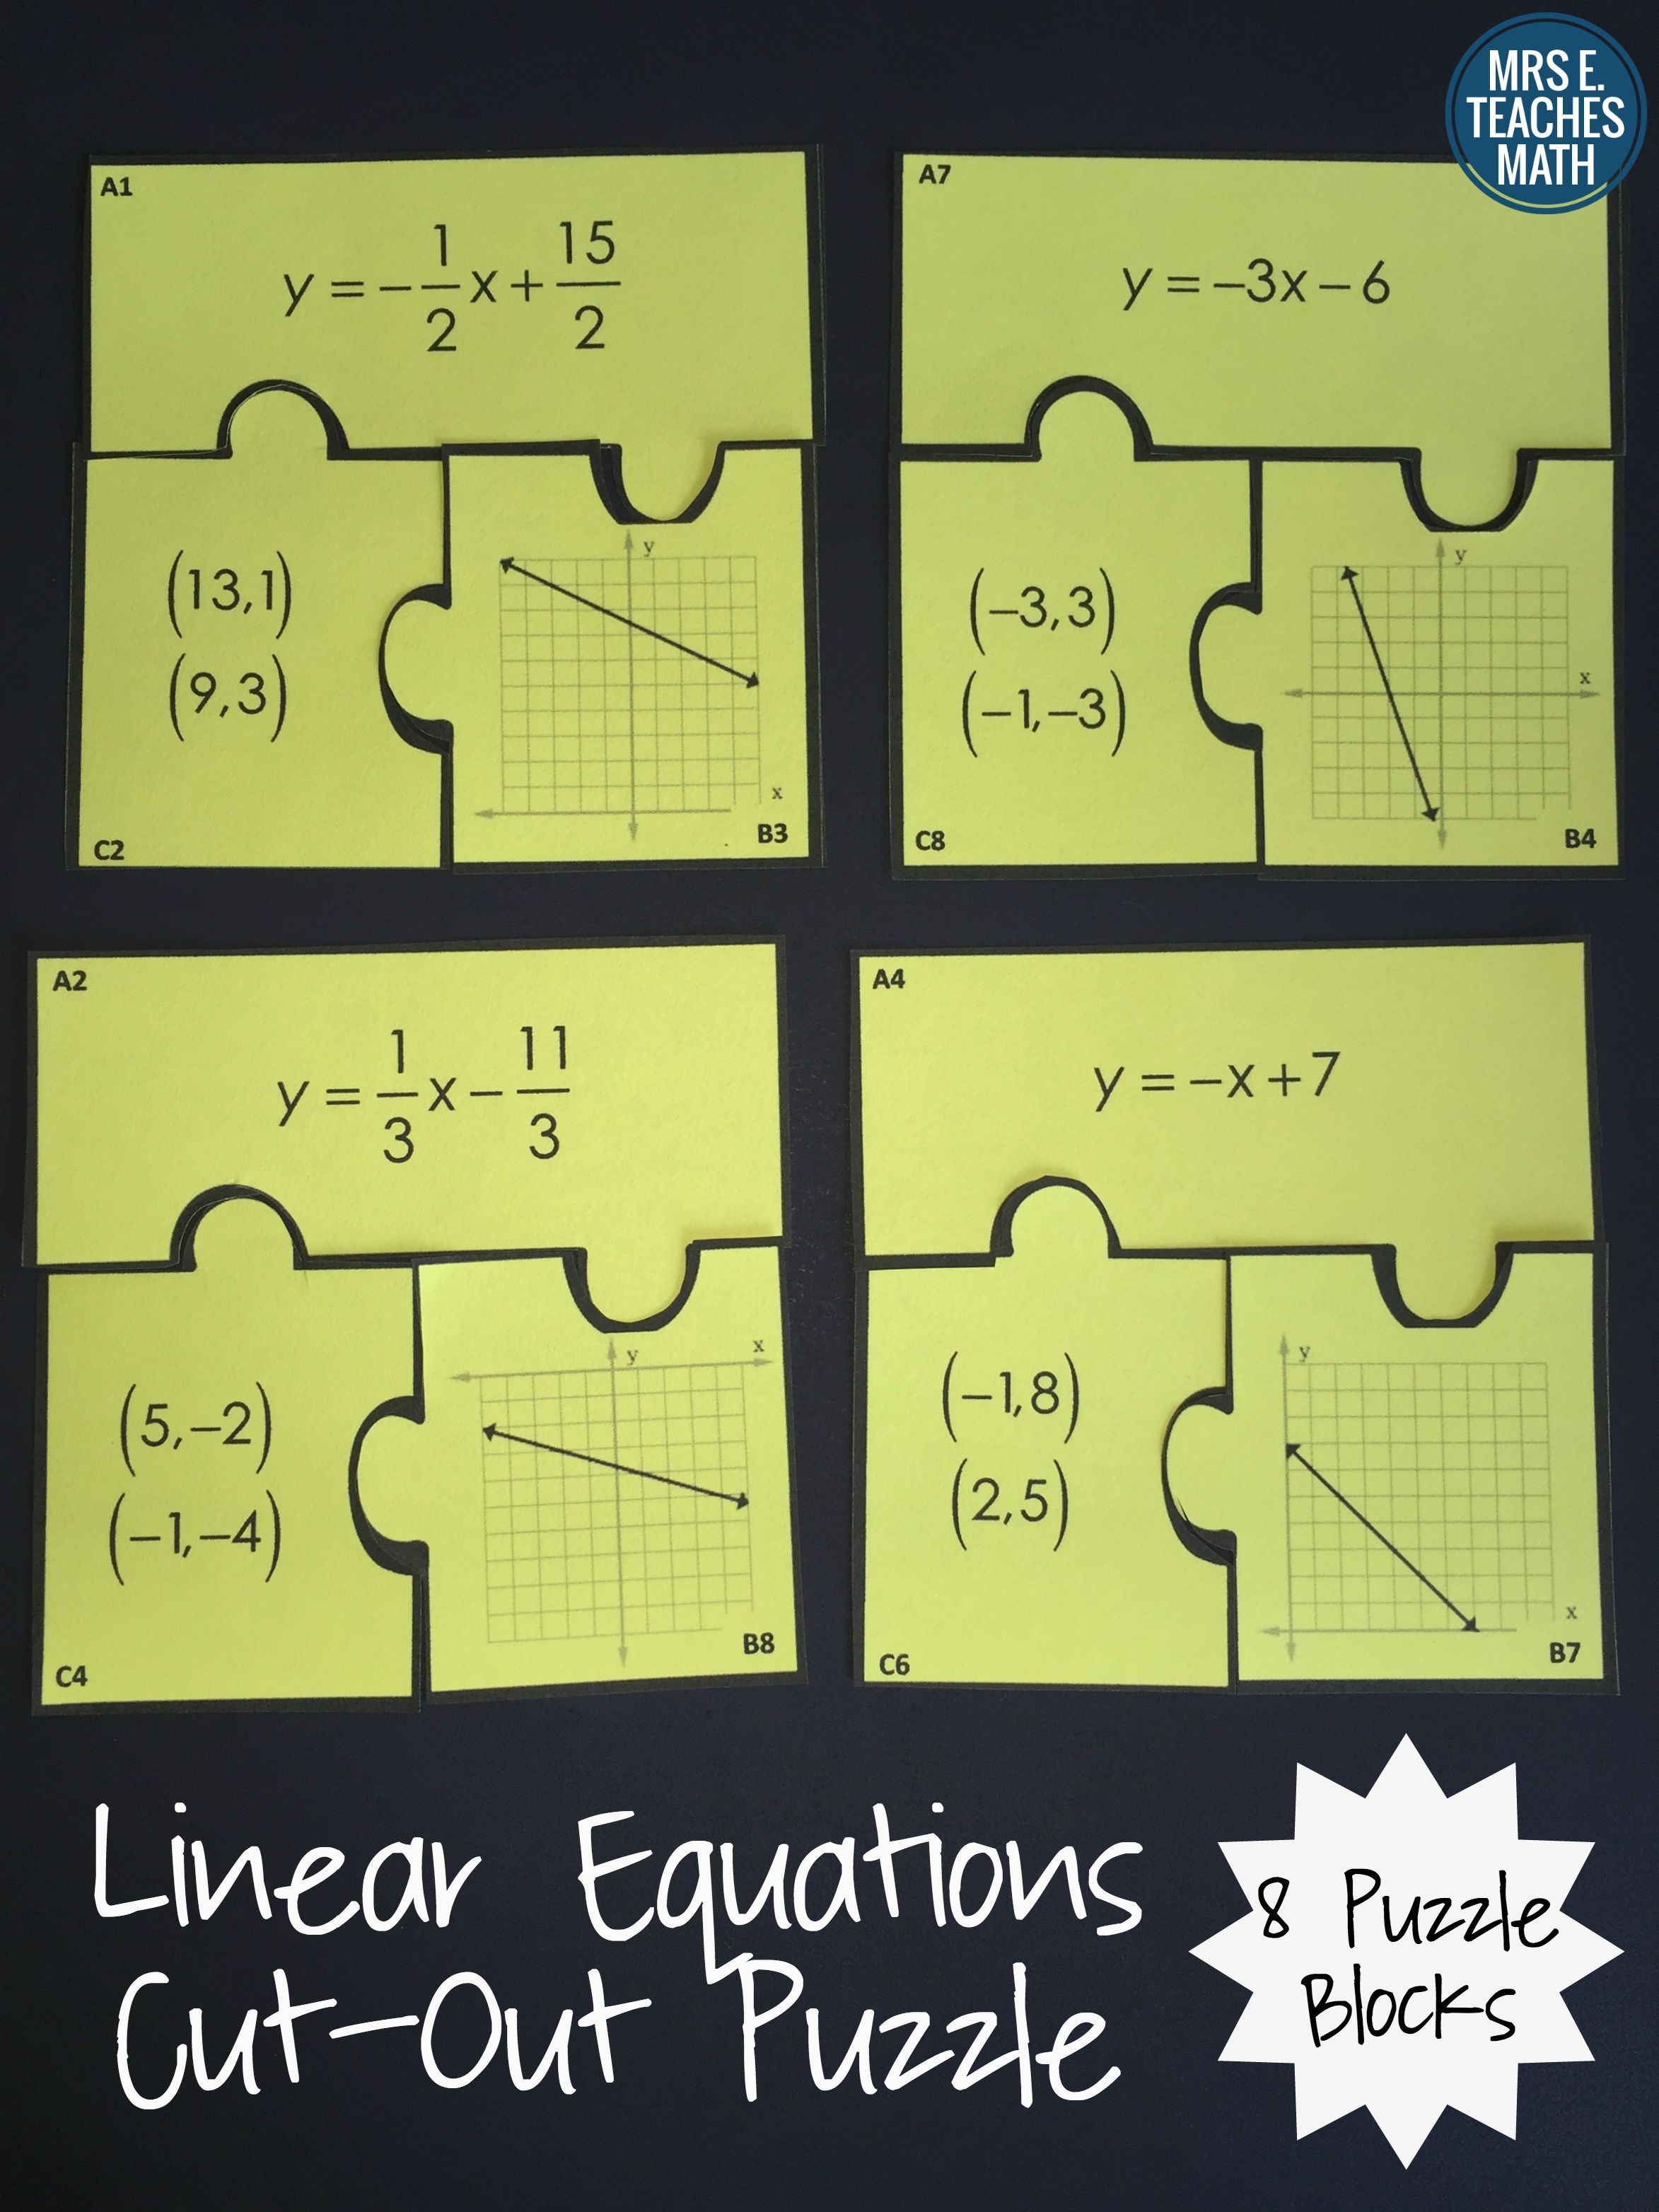 worksheet Linear Equations Puzzle Worksheet linear equations cut out puzzle equation activities and students puzzle